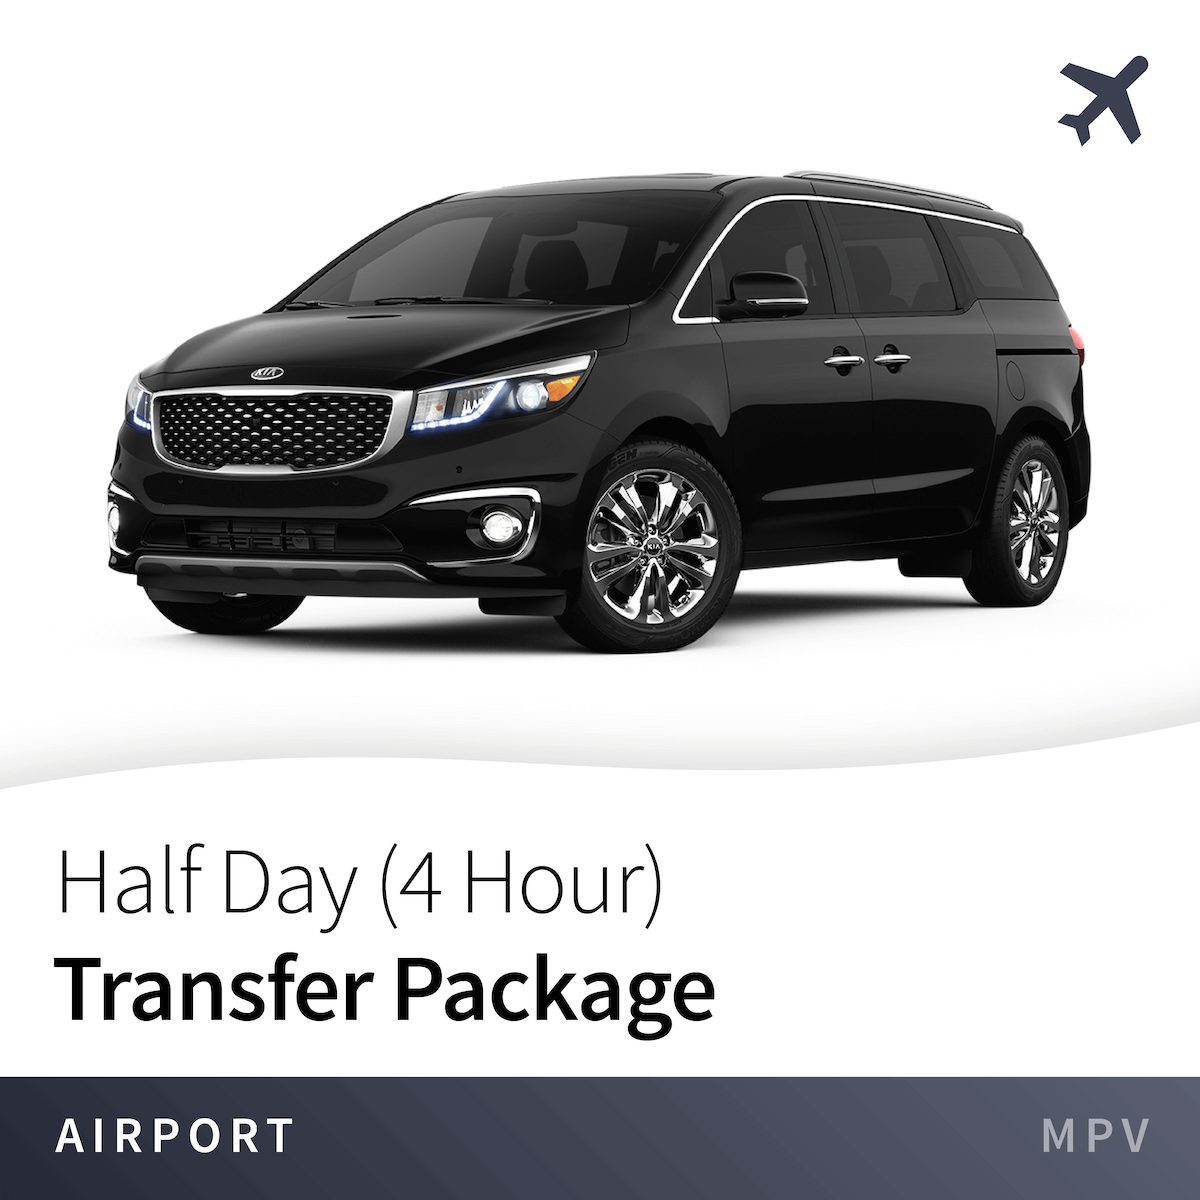 Half Day (4 Hour) Transfer Package From Airport - MPV 3